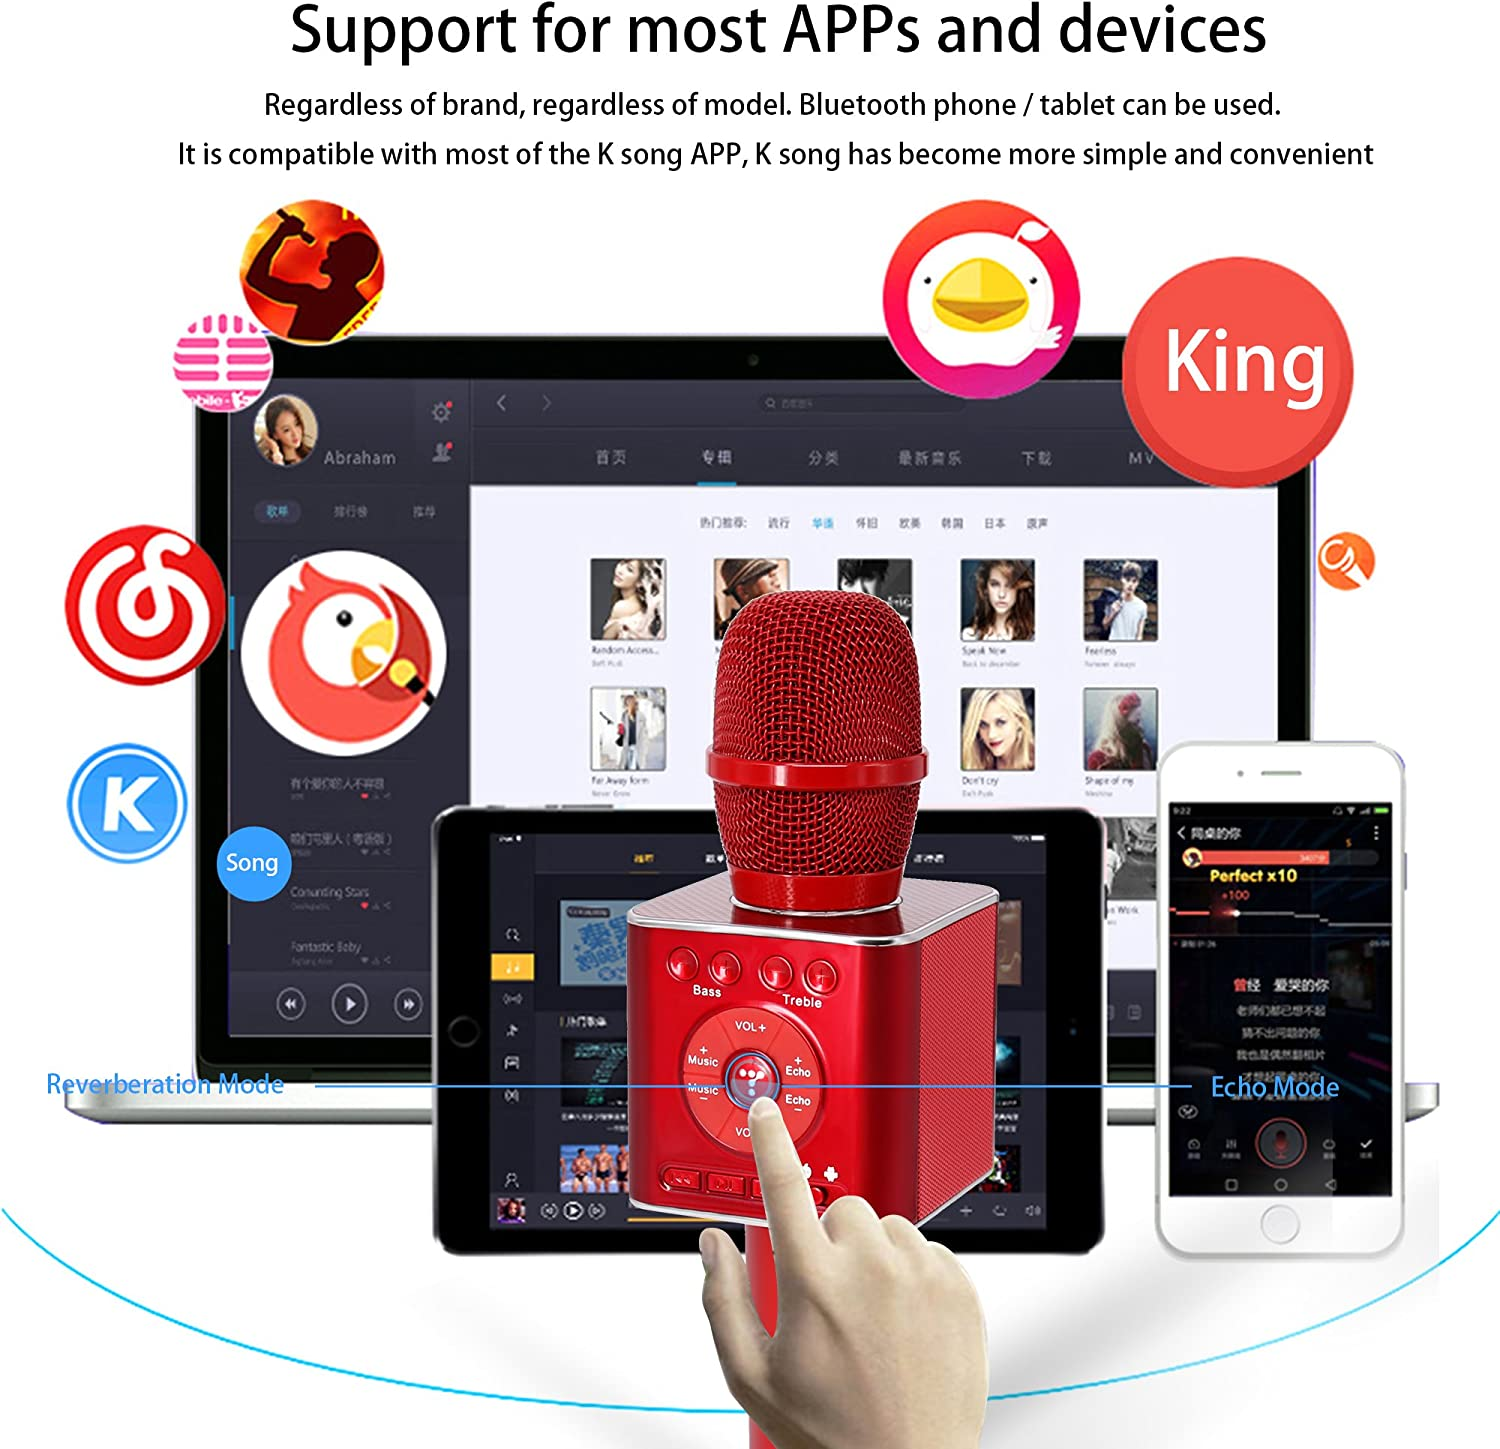 TOSING 04 Portable KTV Player for iOS//Android Smartphone//Tablet,Wireless Karaoke Microphone Bluetooth Speaker 2-in-1 Handheld Sing /& Recording Red